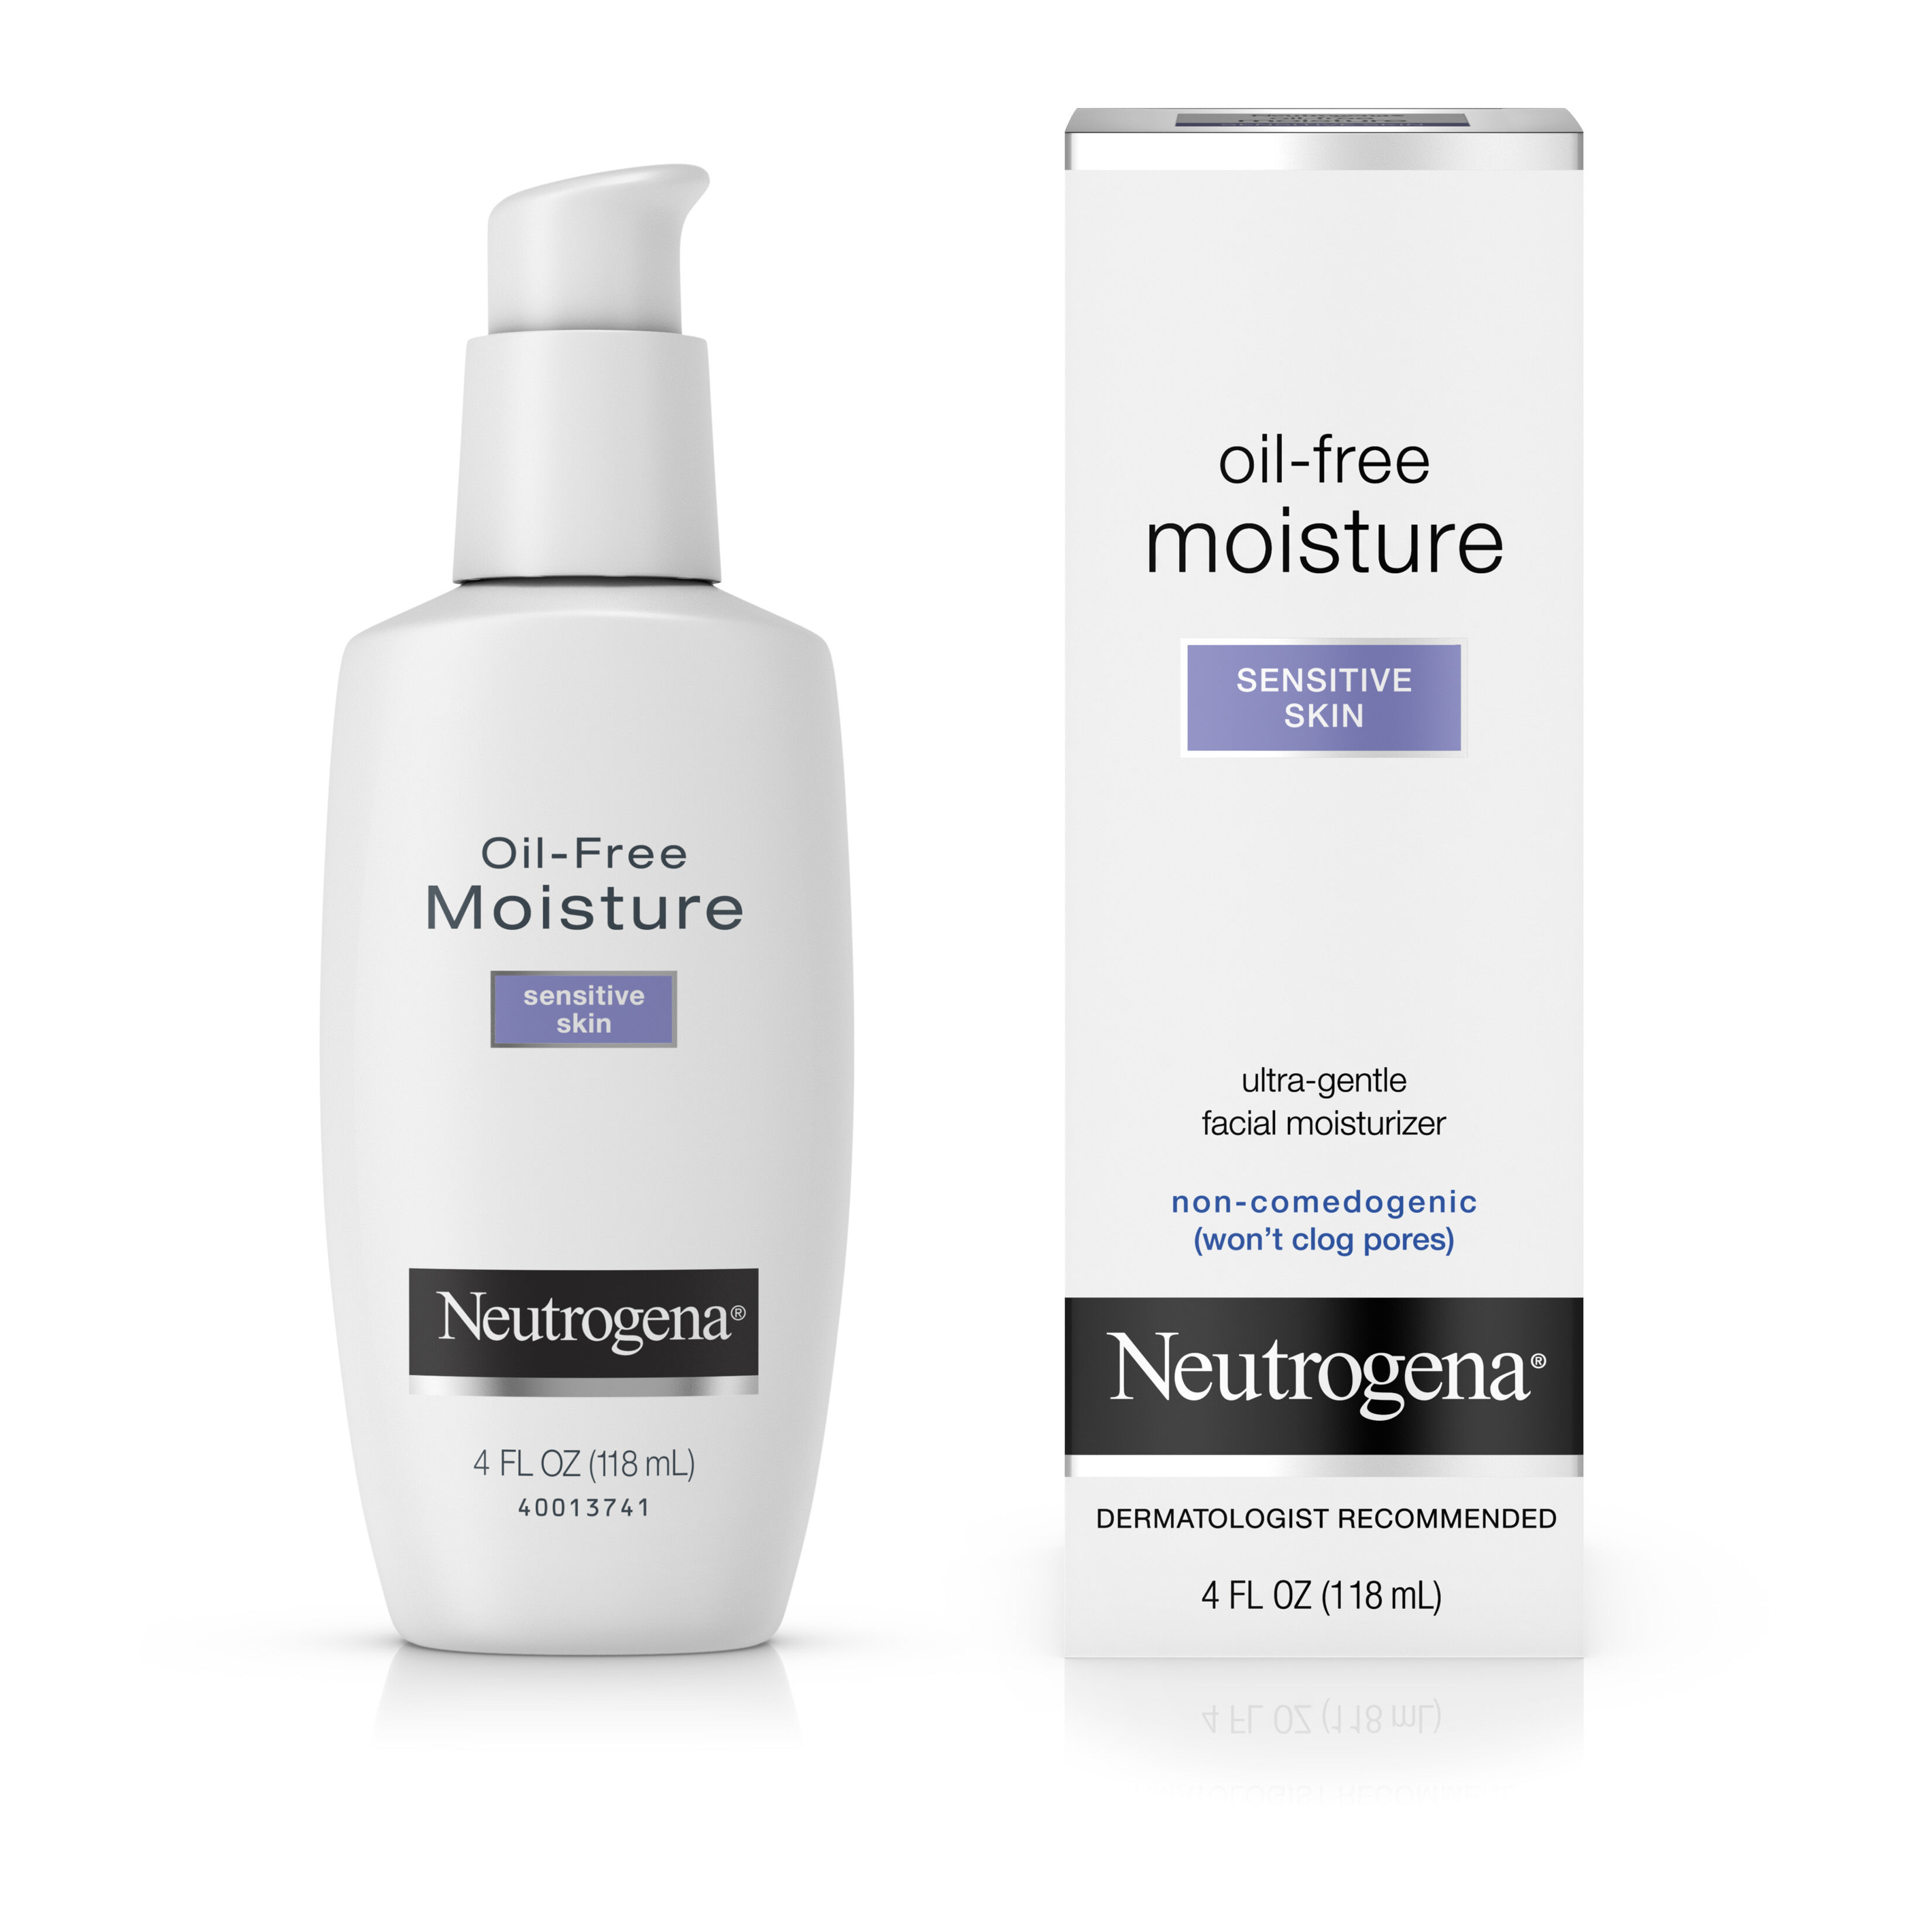 2 Pack - Neutrogena Oil-Free Moisture Facial Moisturizer, Sensitive Skin 4 oz Payot - Creme No 2 Cachemire Anti-Redness Anti-Stress Soothing Rich Care - 50ml/1.6oz